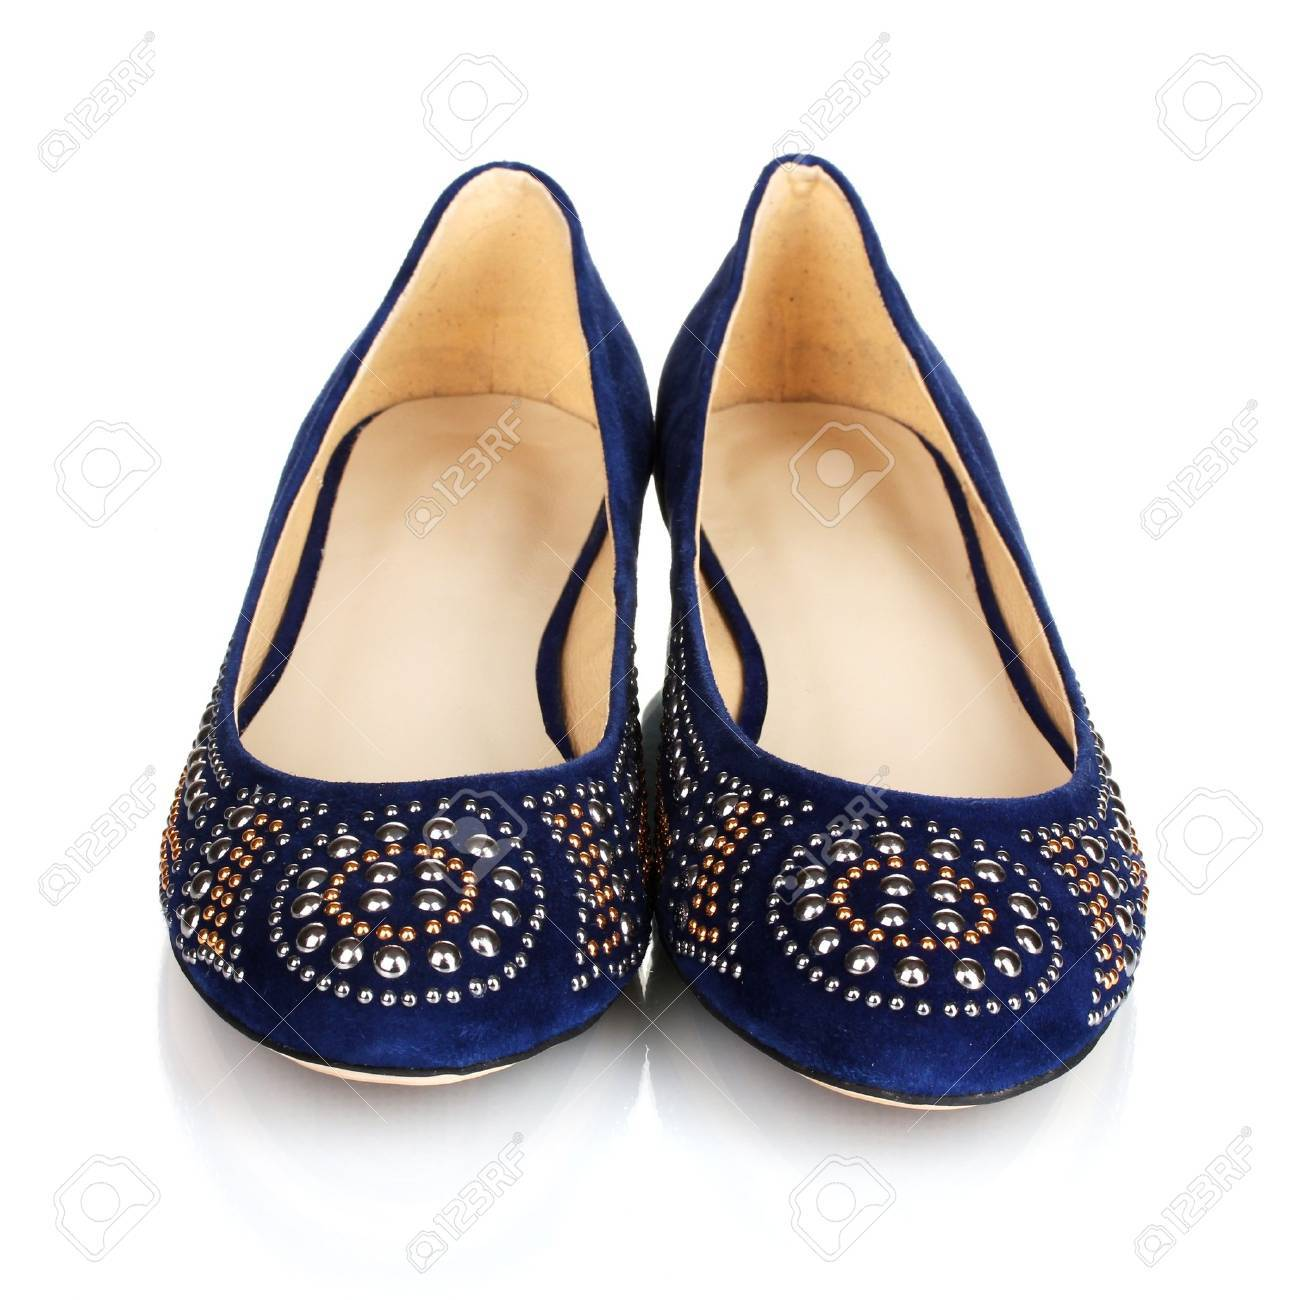 Shoe for womens :: Girls clothing stores